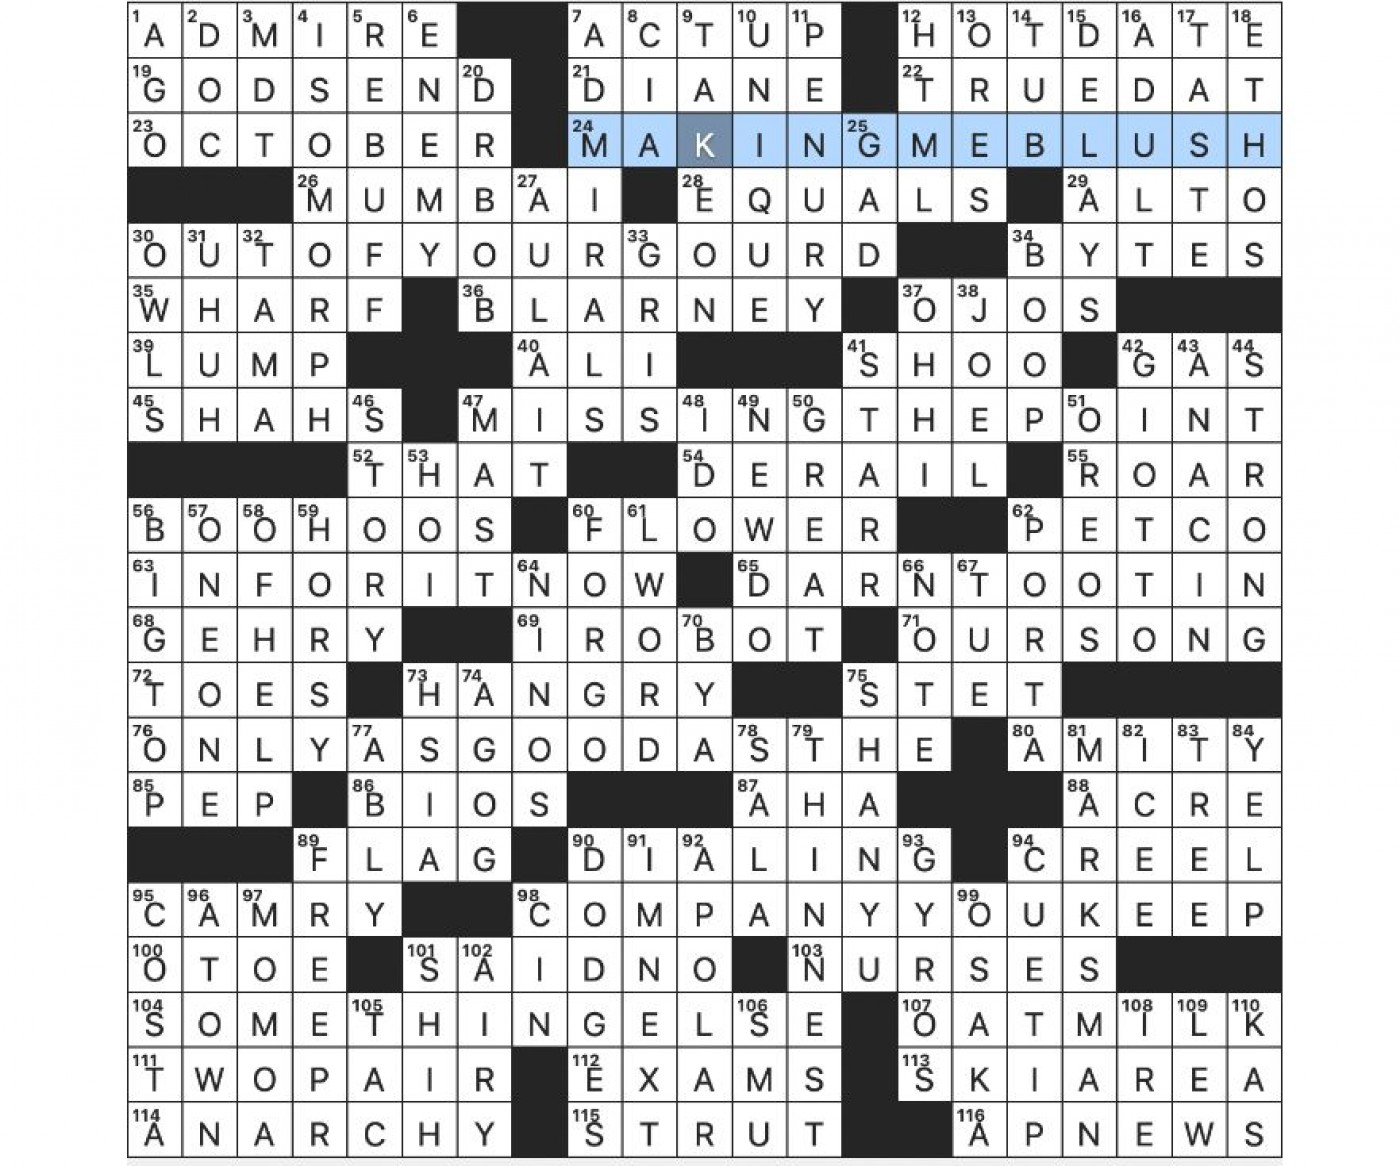 004 Archaicawful Rex Parker Doe Nytime Crossword Inspiration  The Nyt It All Add Up May 24 2020 Chore Galore1400